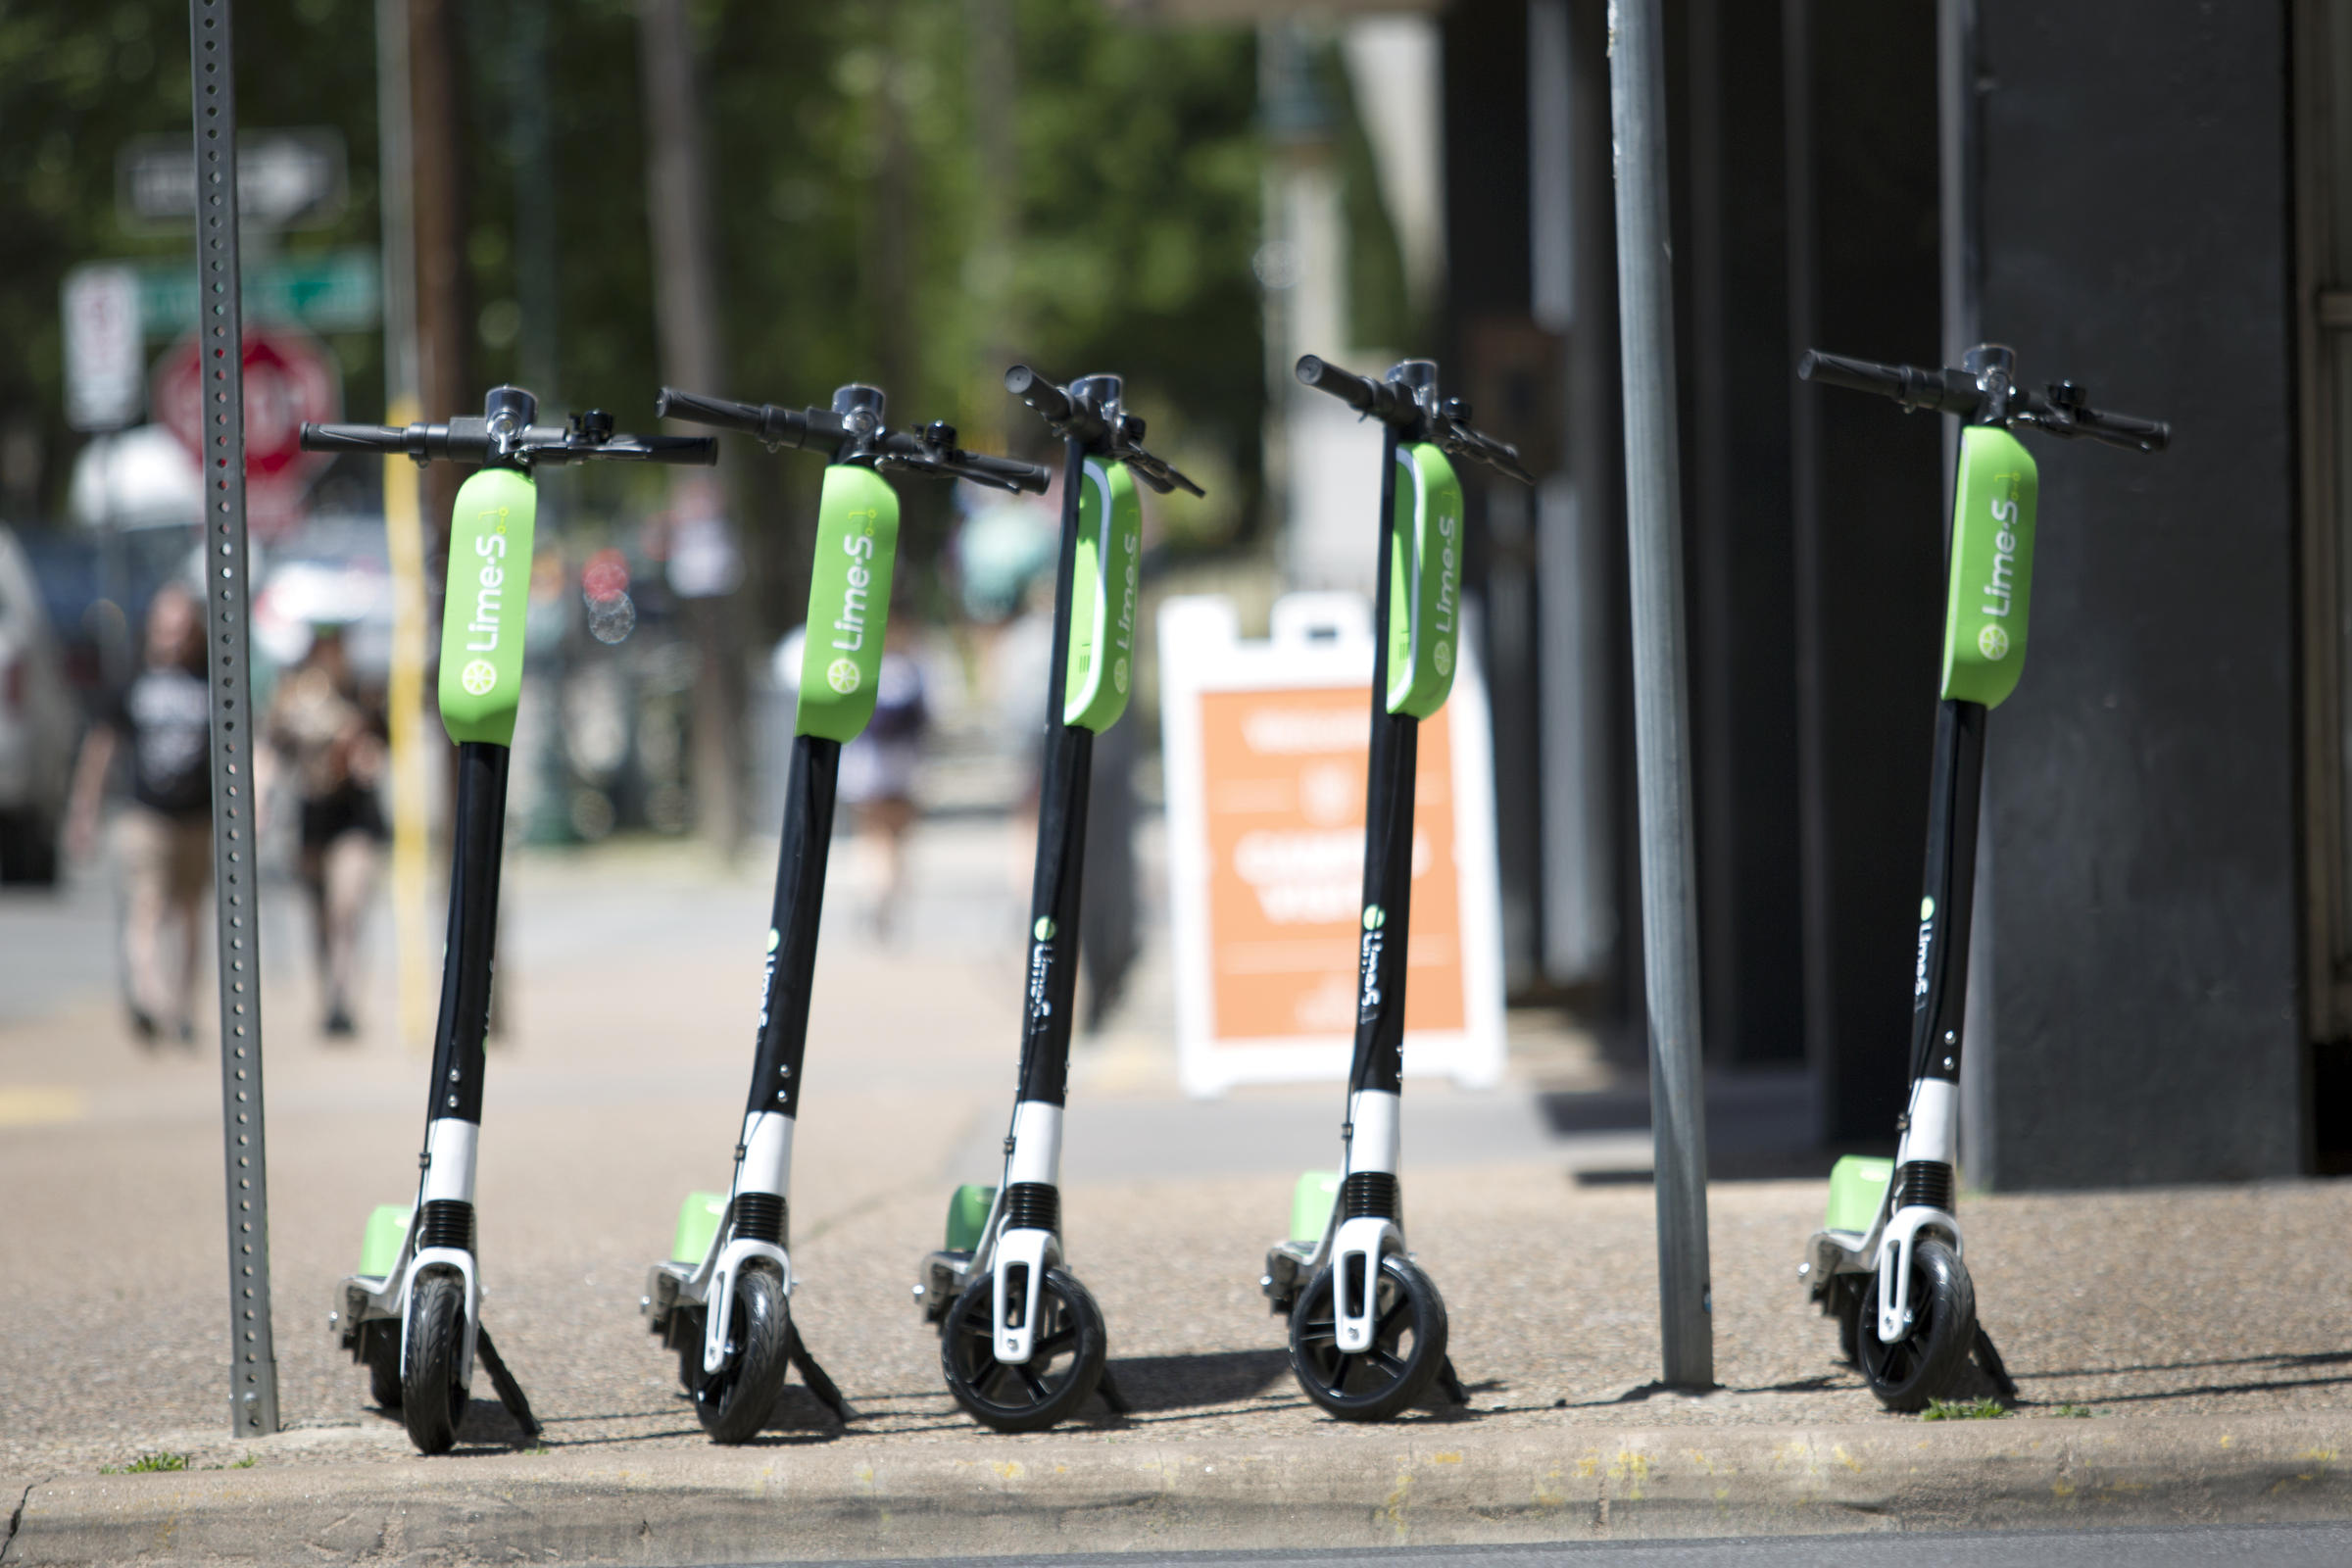 After Two Dockless Scooter Companies Launch In Austin, City